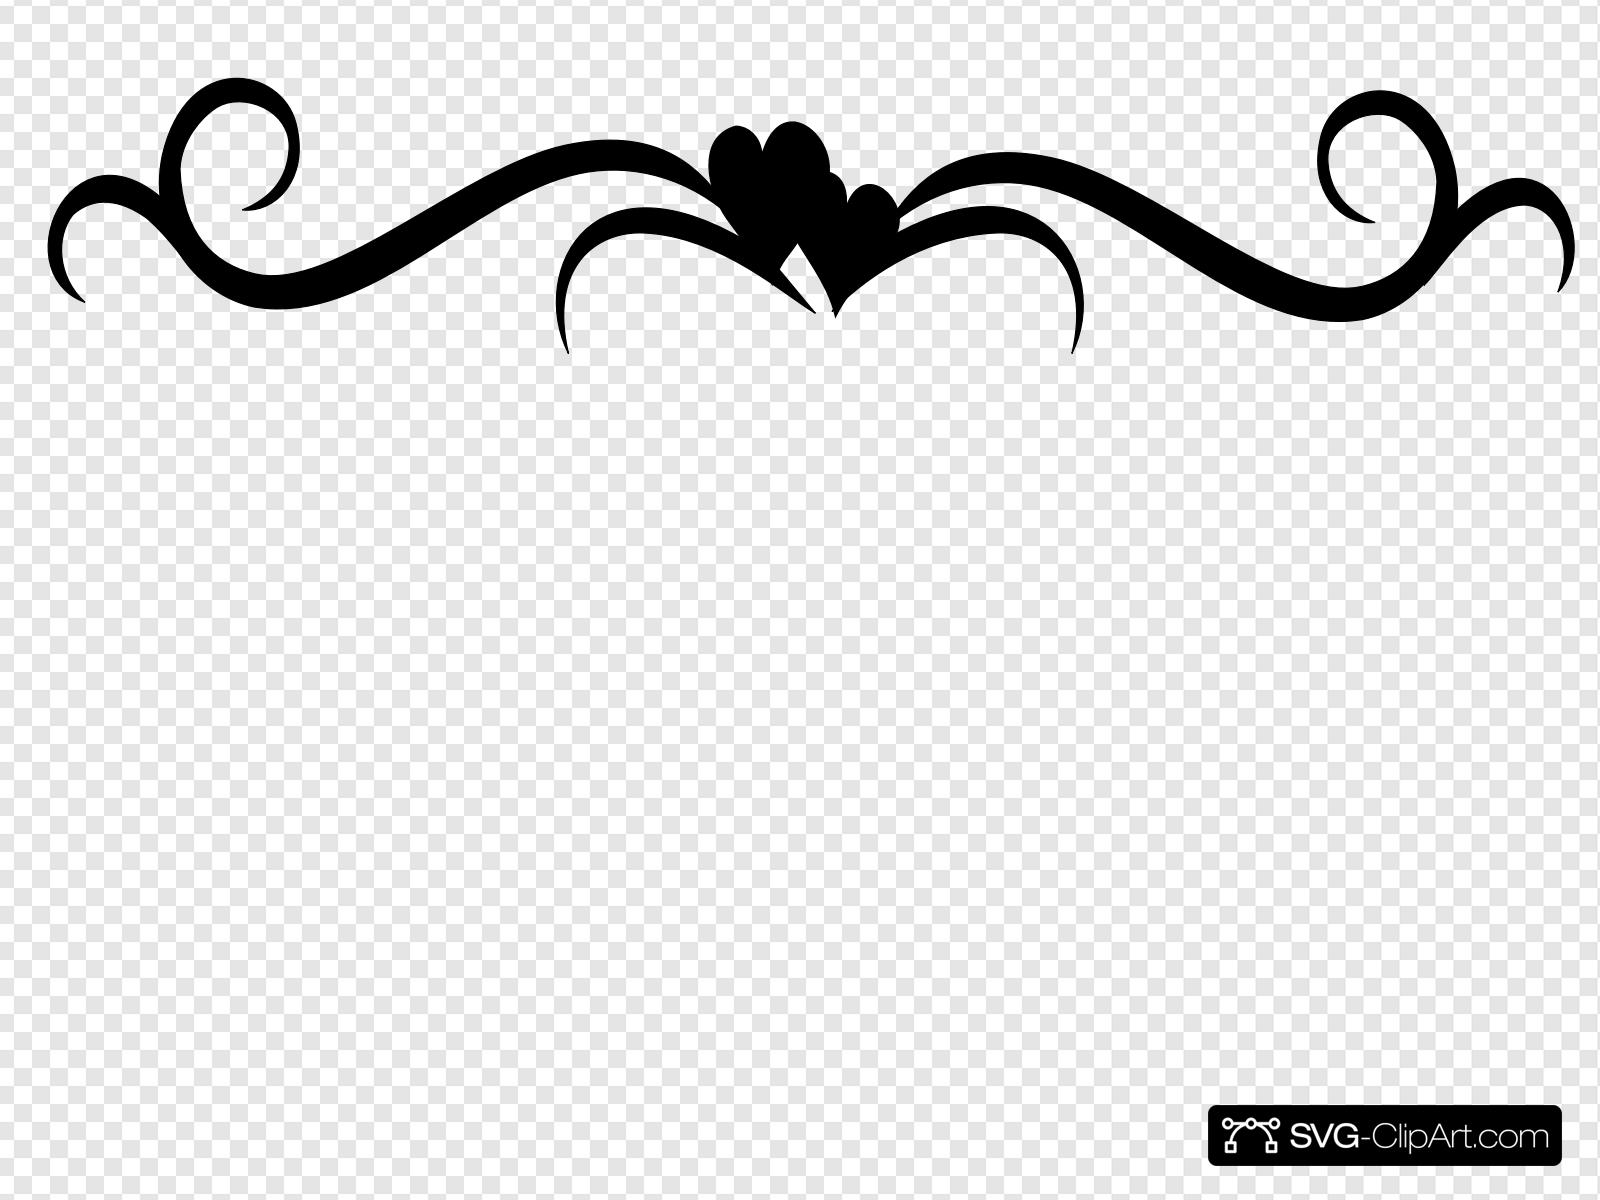 Swirl With Heart Clip art, Icon and SVG.